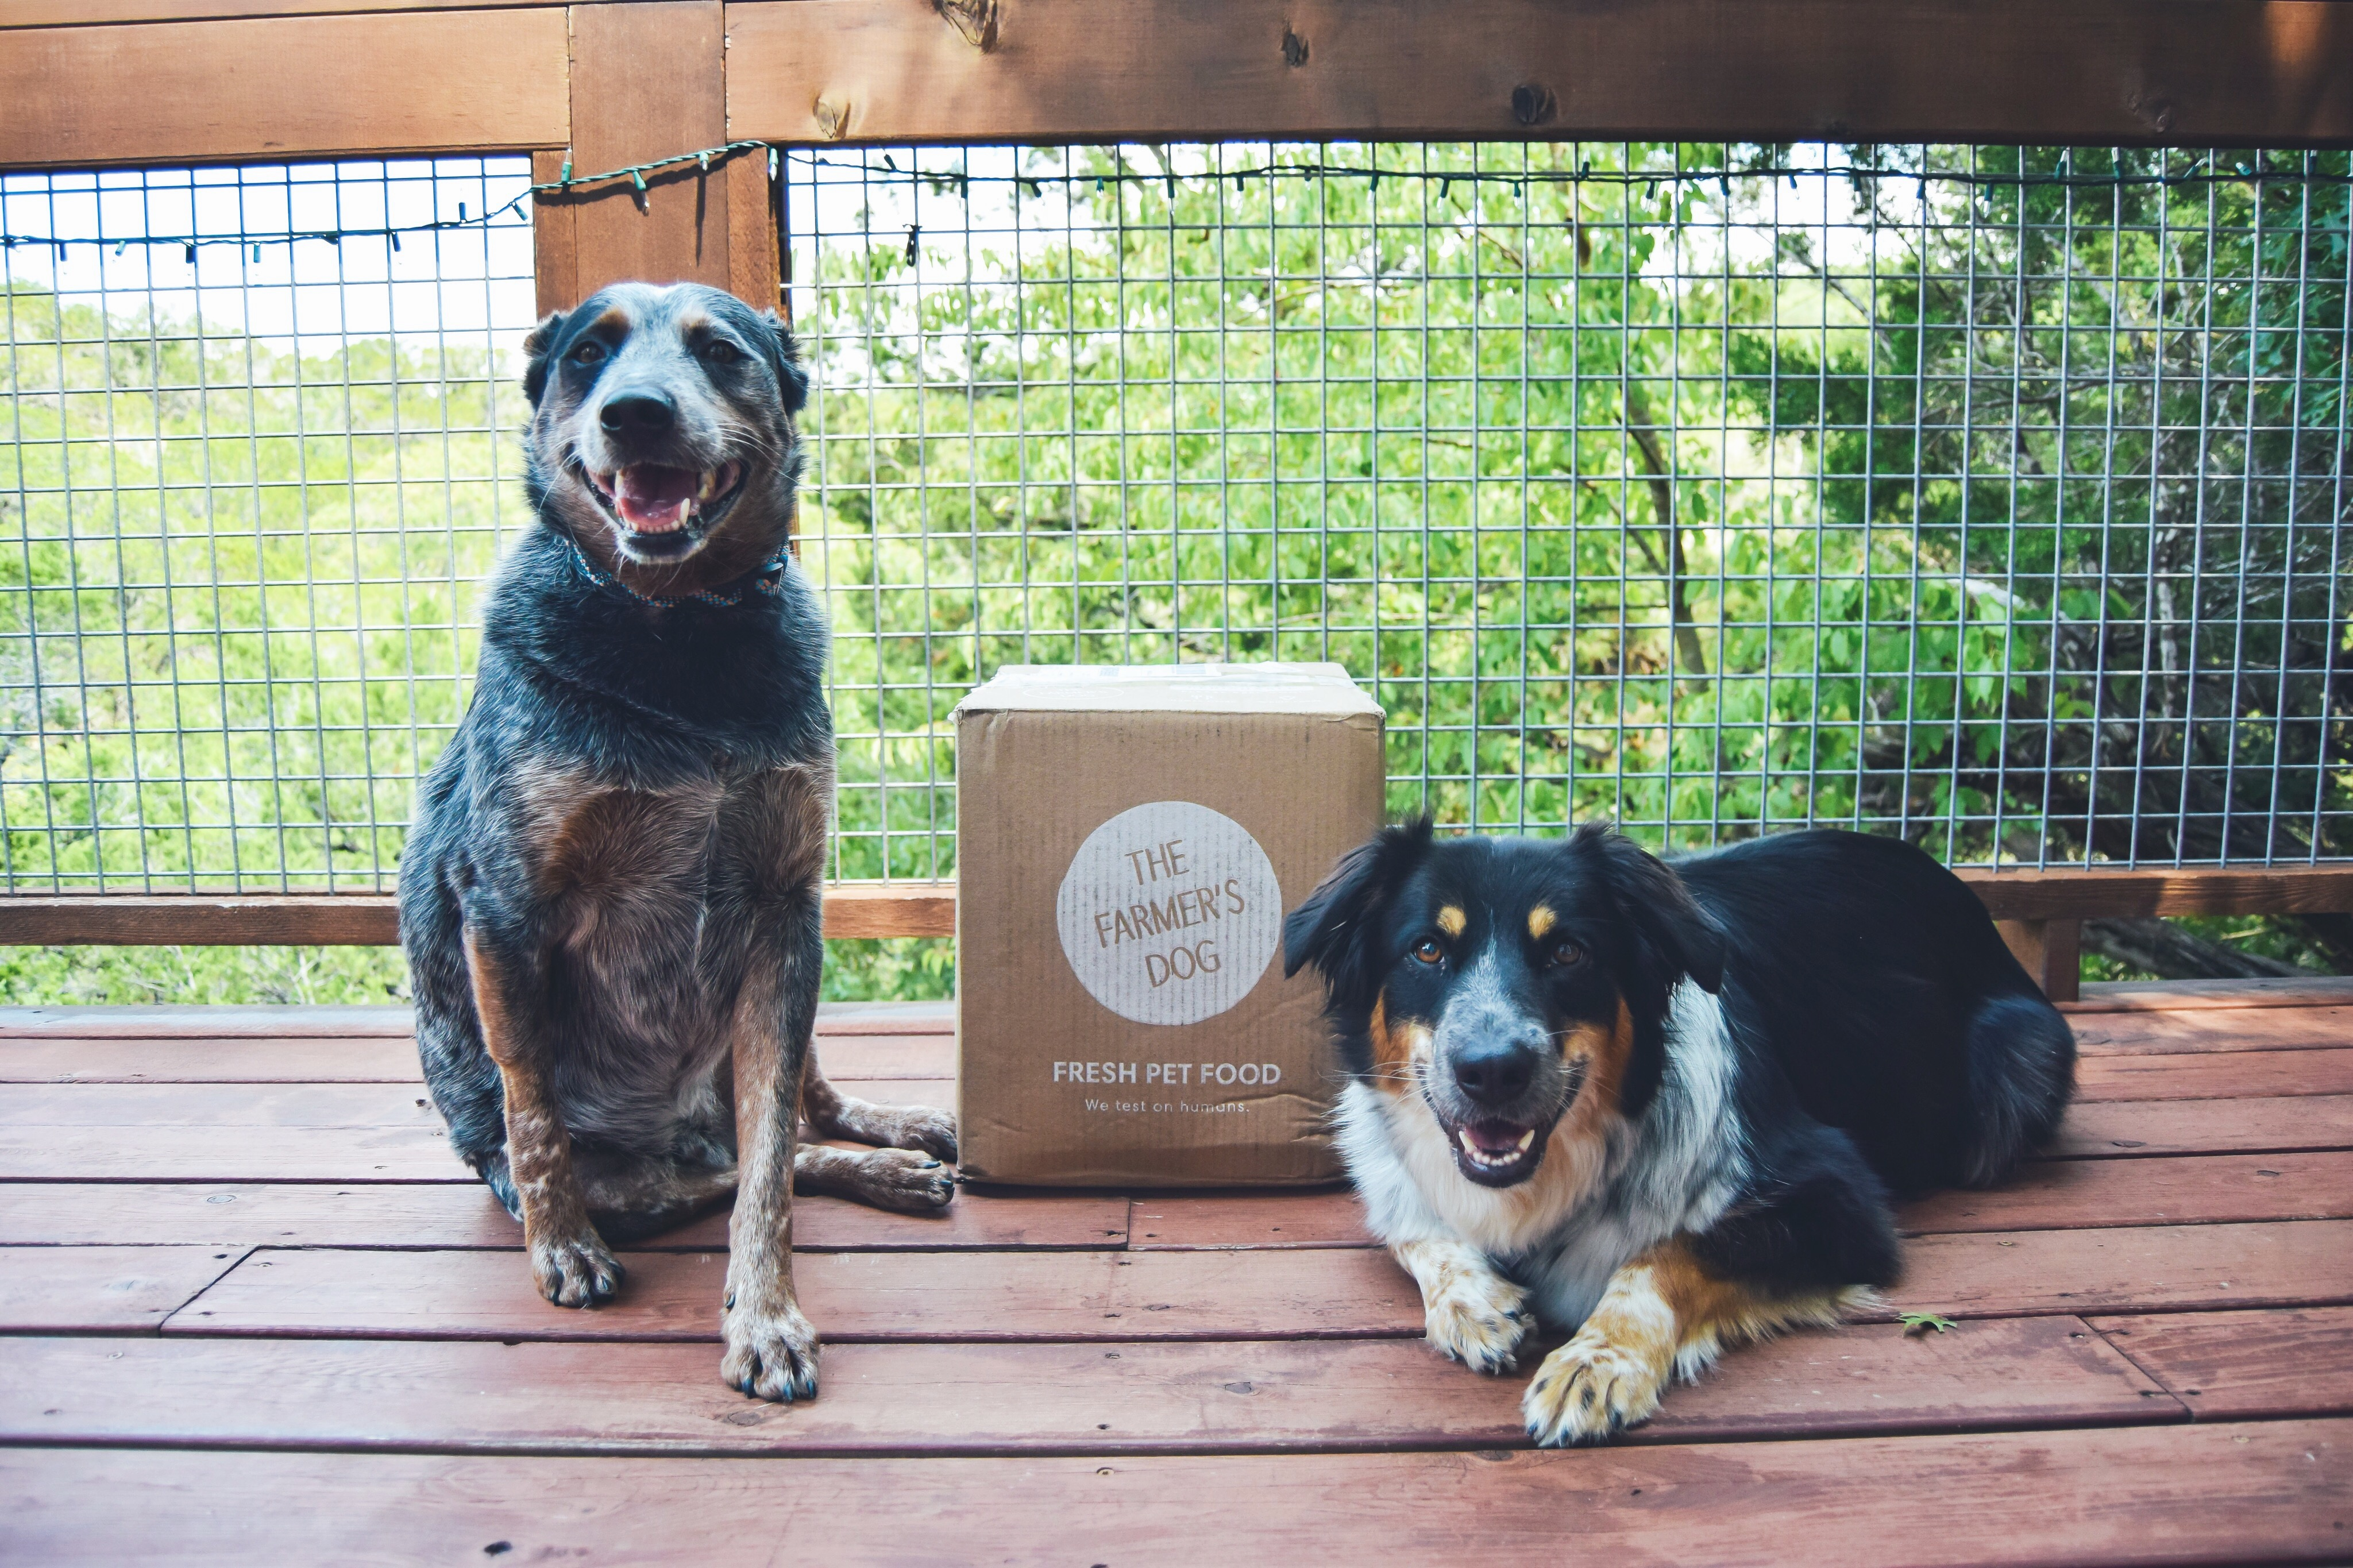 @amandakwaltman's cover photo for 'The Farmer's Dog: A Smarter Pet Food, Home Delivered. | The Brilliant Balance'